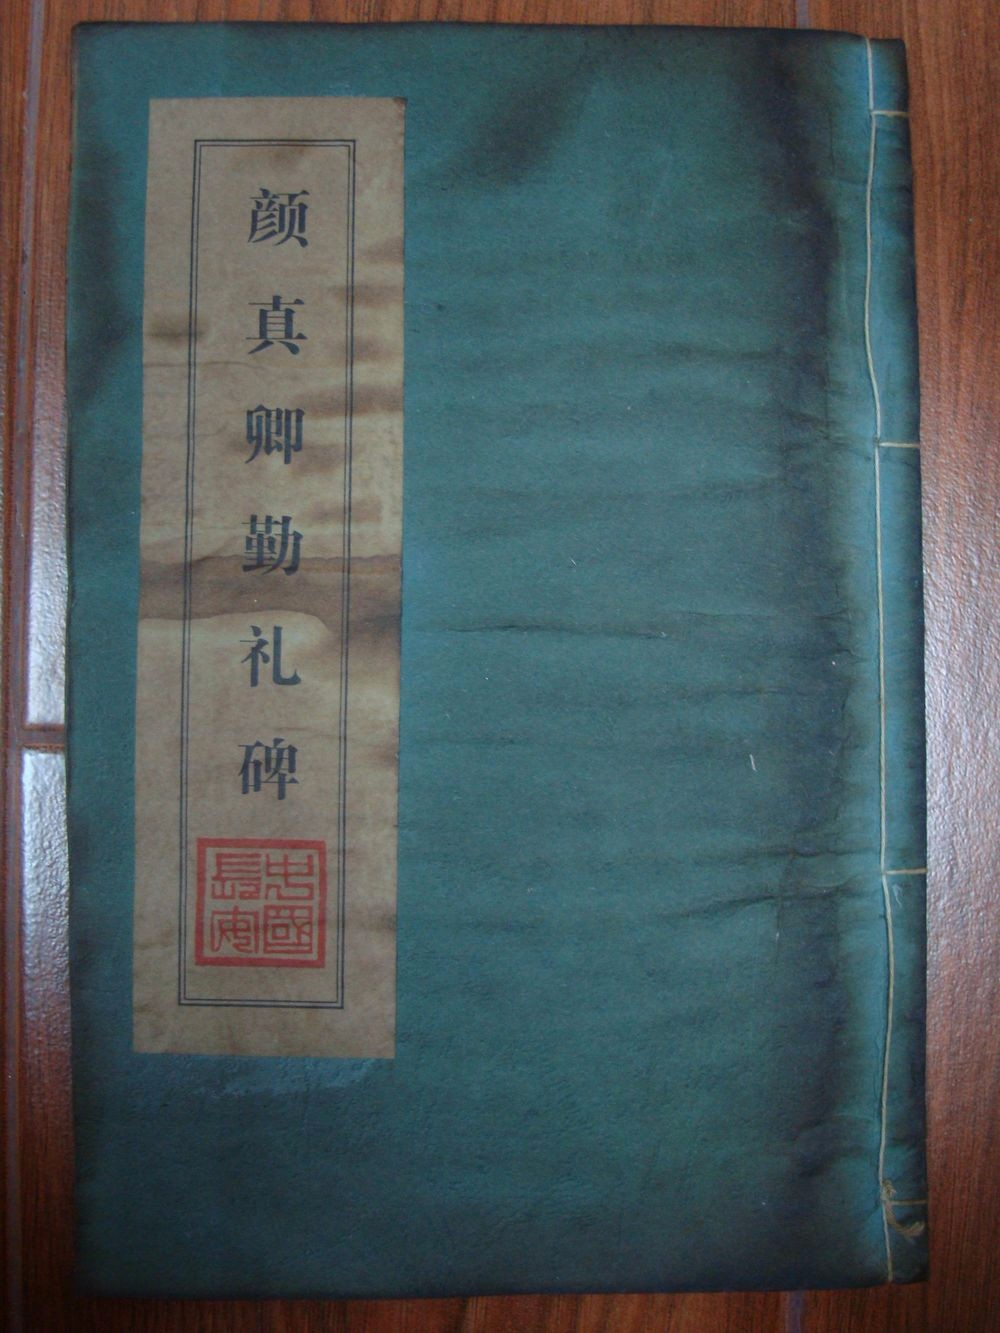 Rare Old Chinese Calligraphy Book Signed